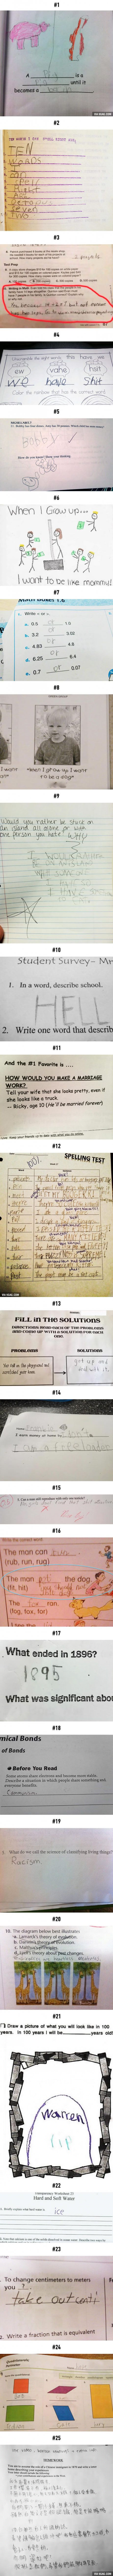 Smartass Kids Who Are Going Places In Life